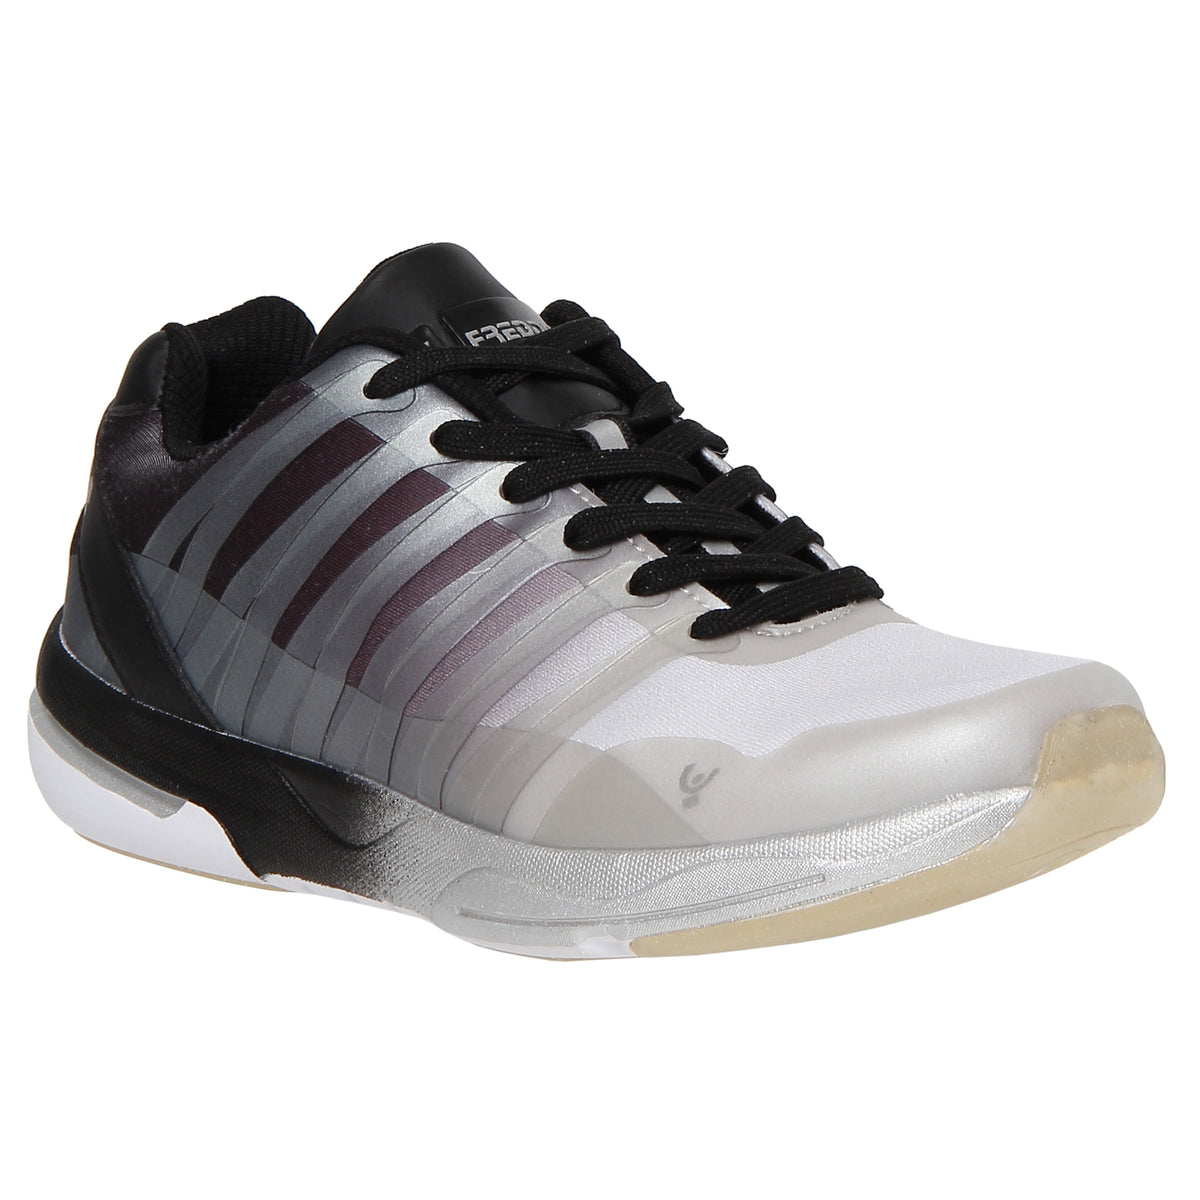 SILVER BLACK FADE FITNESS SHOE